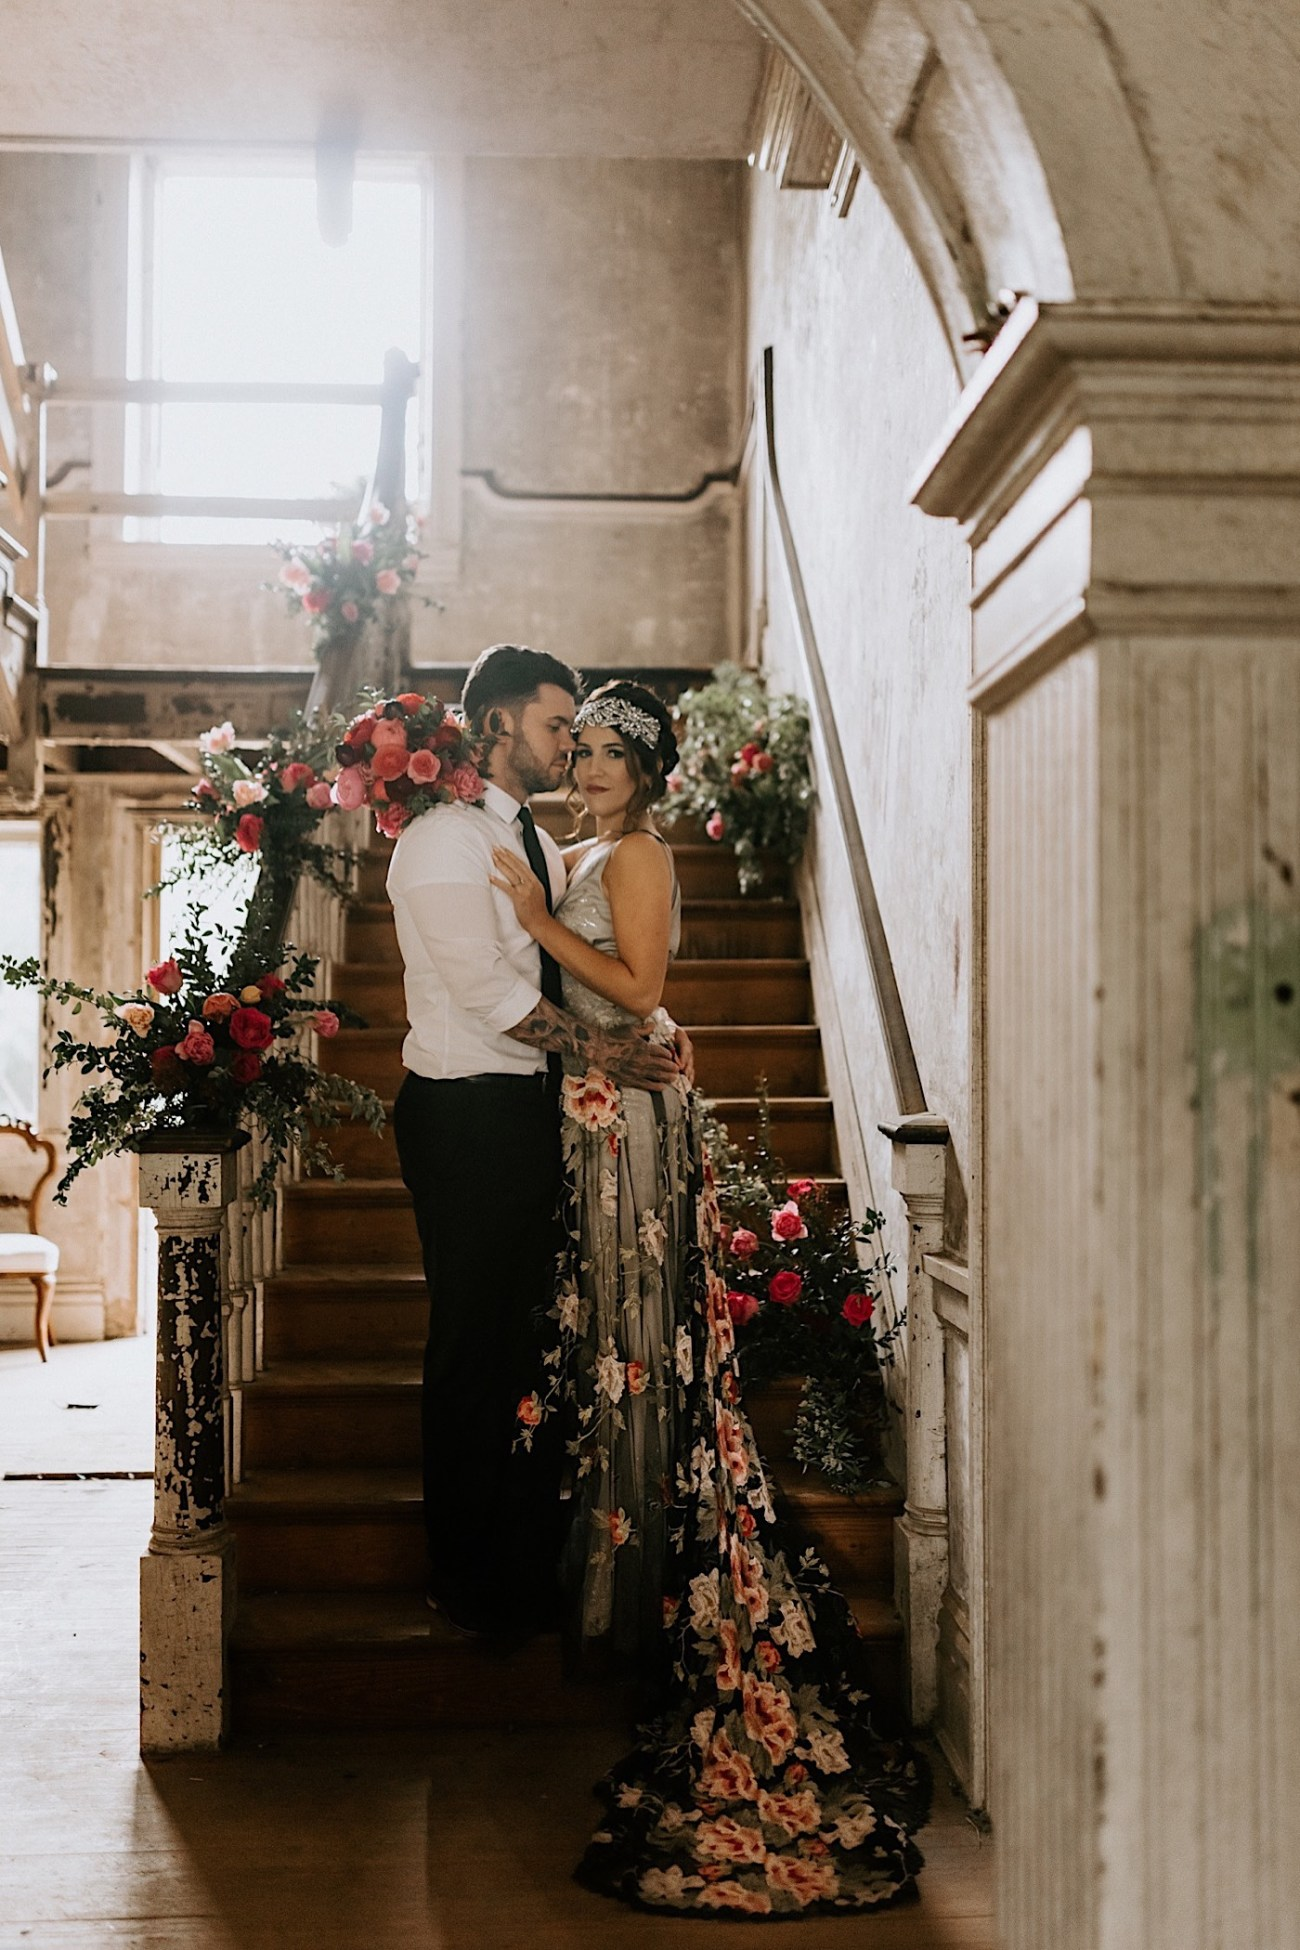 Hacienda wedding inspiration. Claire Pettibone Wedding dress. Ravena Wedding gown by Claire Pettibone. Black wedding dress inspiration. Philadelphia Wedding Photographer, Philadelphia Wedding Venue, Barnsley Manor Wedding. Anais Possamai Photography